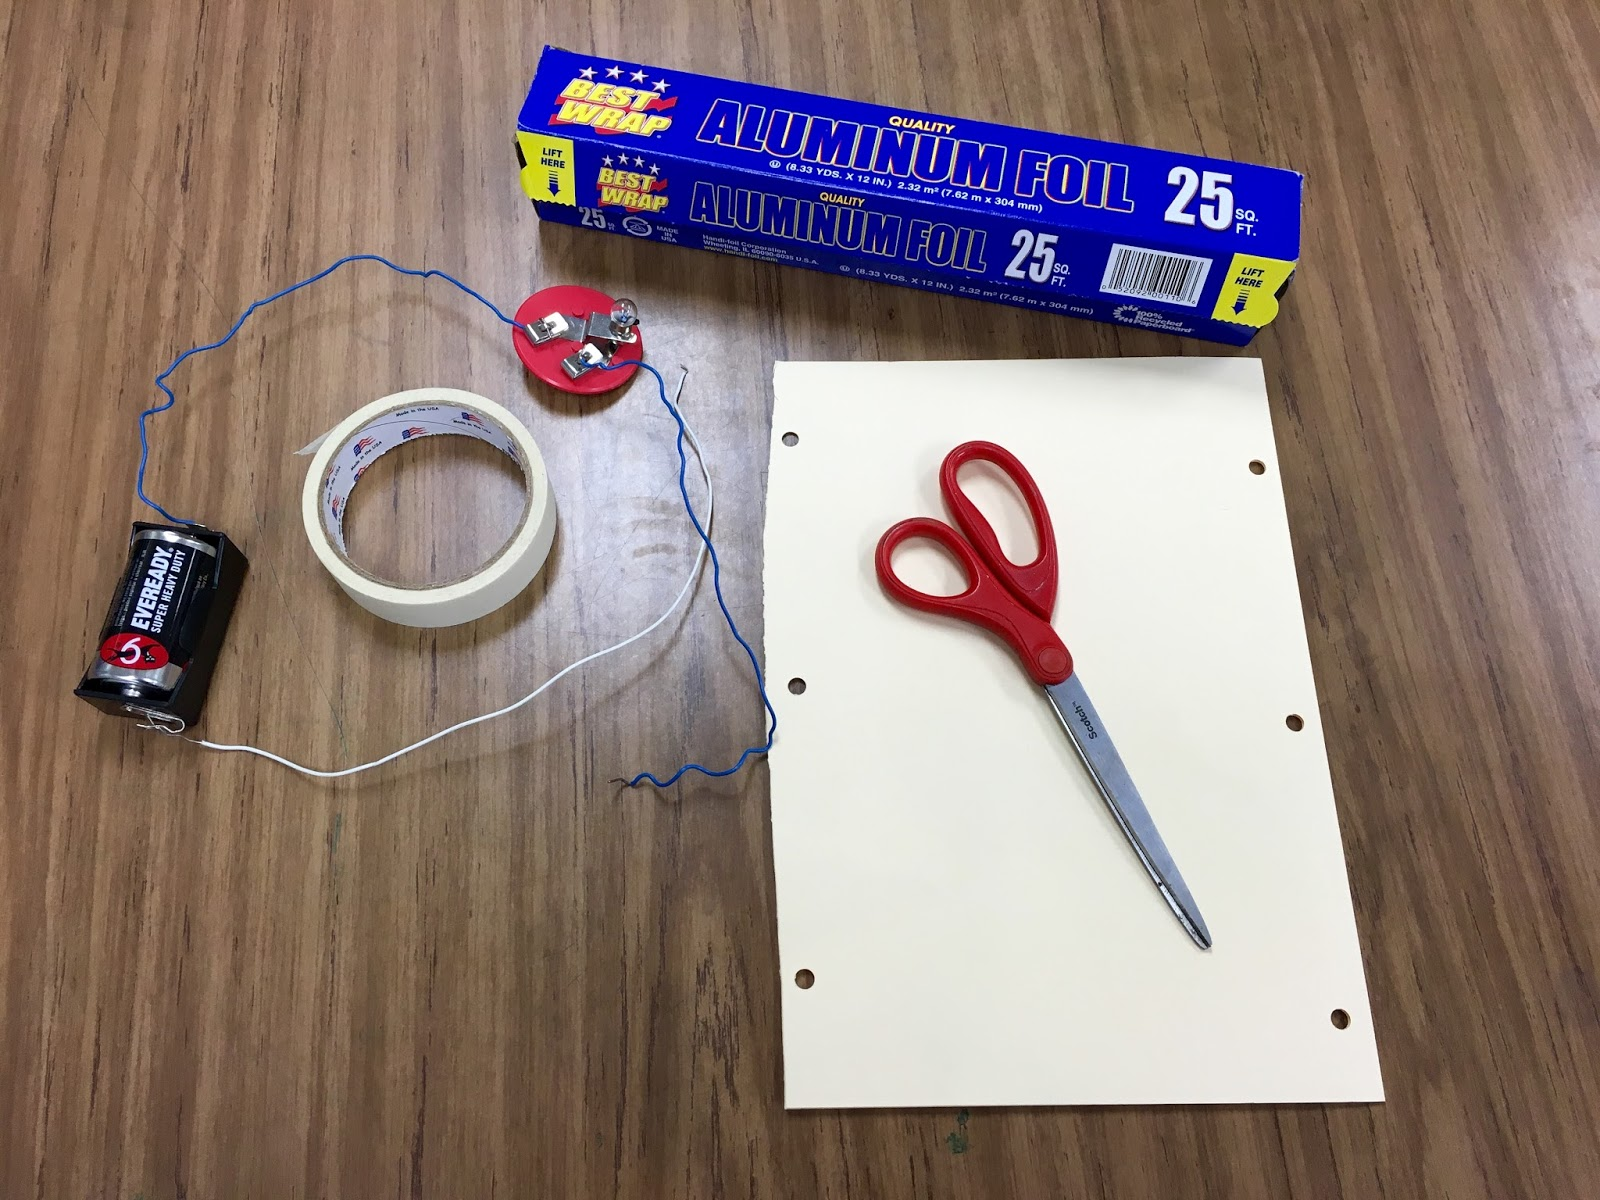 Owl About Teaching Electrical Circuit Quiz Folders With Battery And Light Bulb Would Need To Make A Folder Like My Example Shown Below Where The Question Correct Answer Completes Up